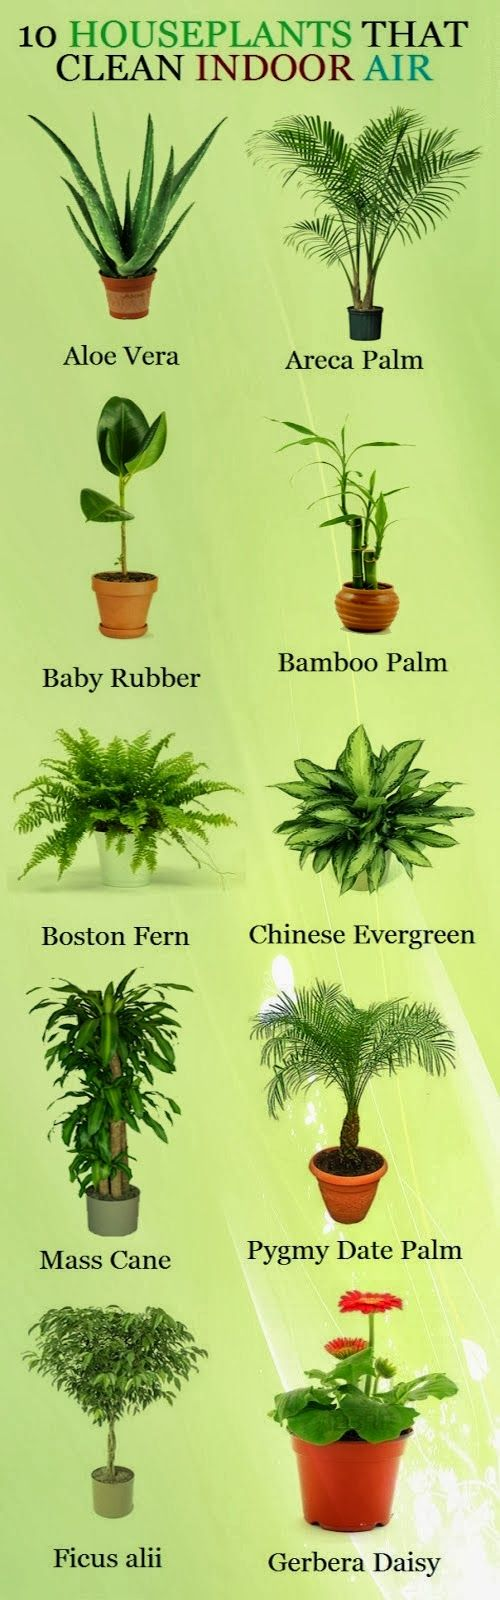 Ten Houseplants That Clean Indoor Air | Alternative Gardning